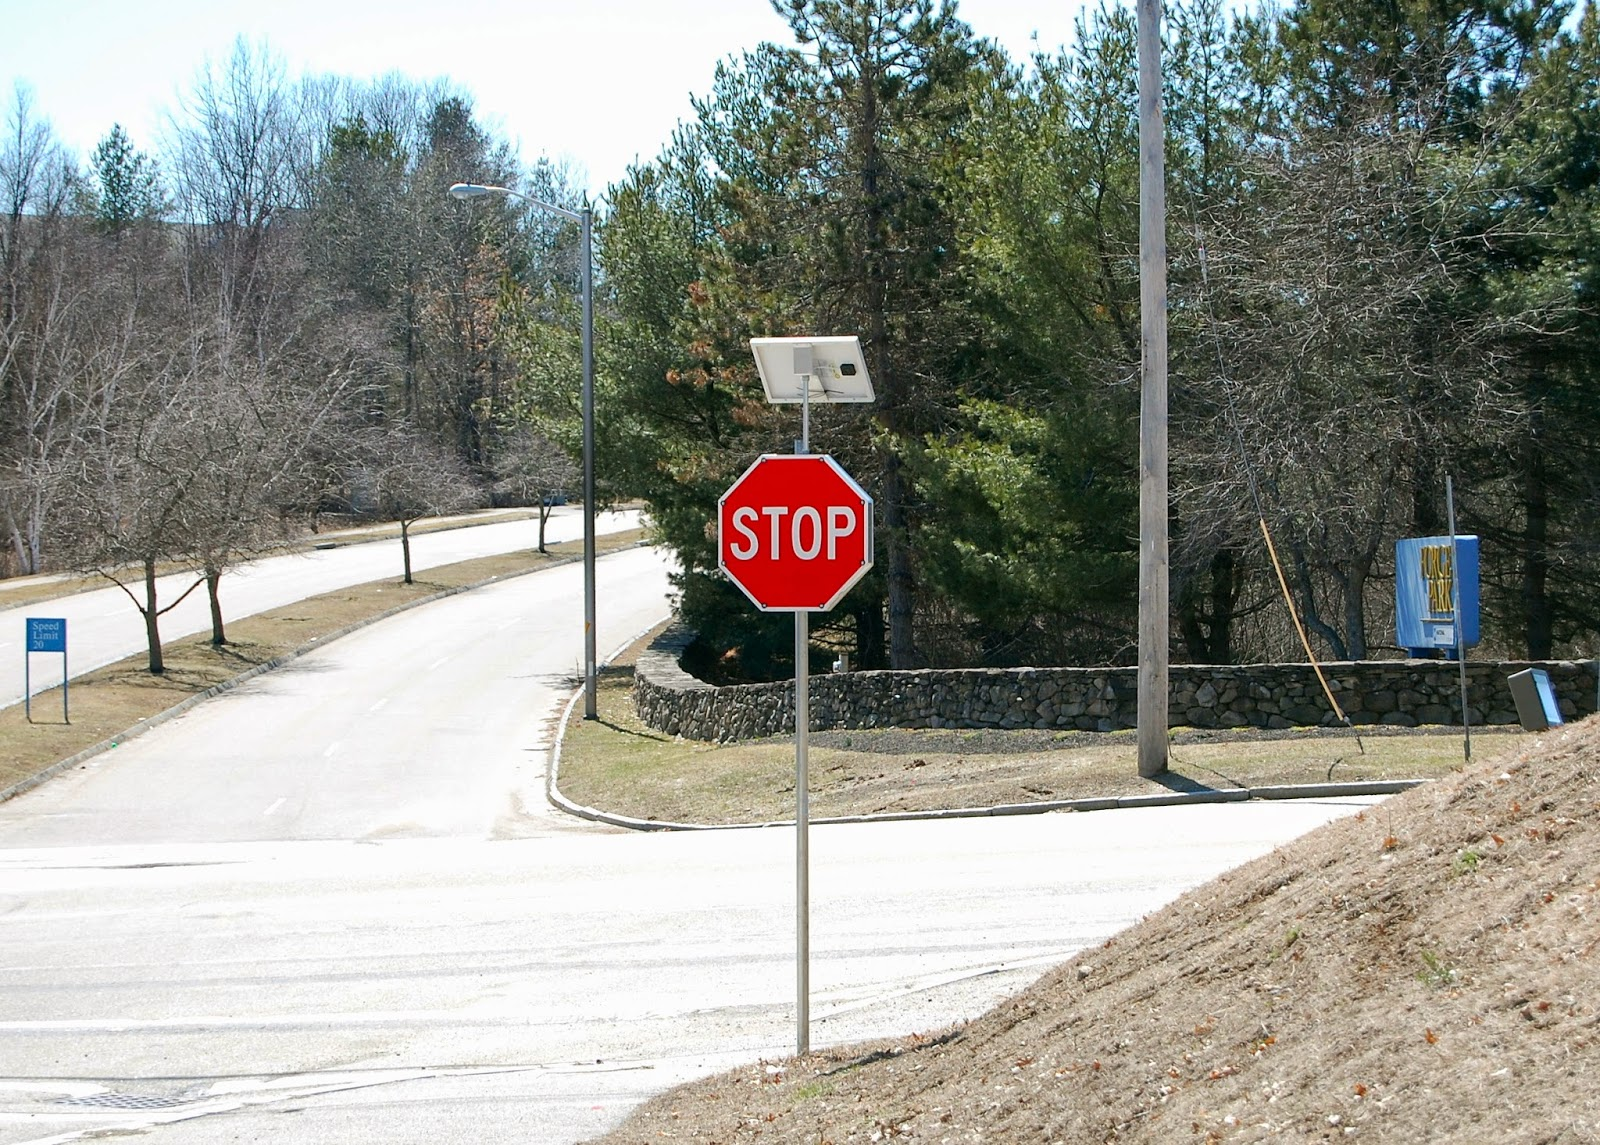 stop sign has blinking lights all around the edge